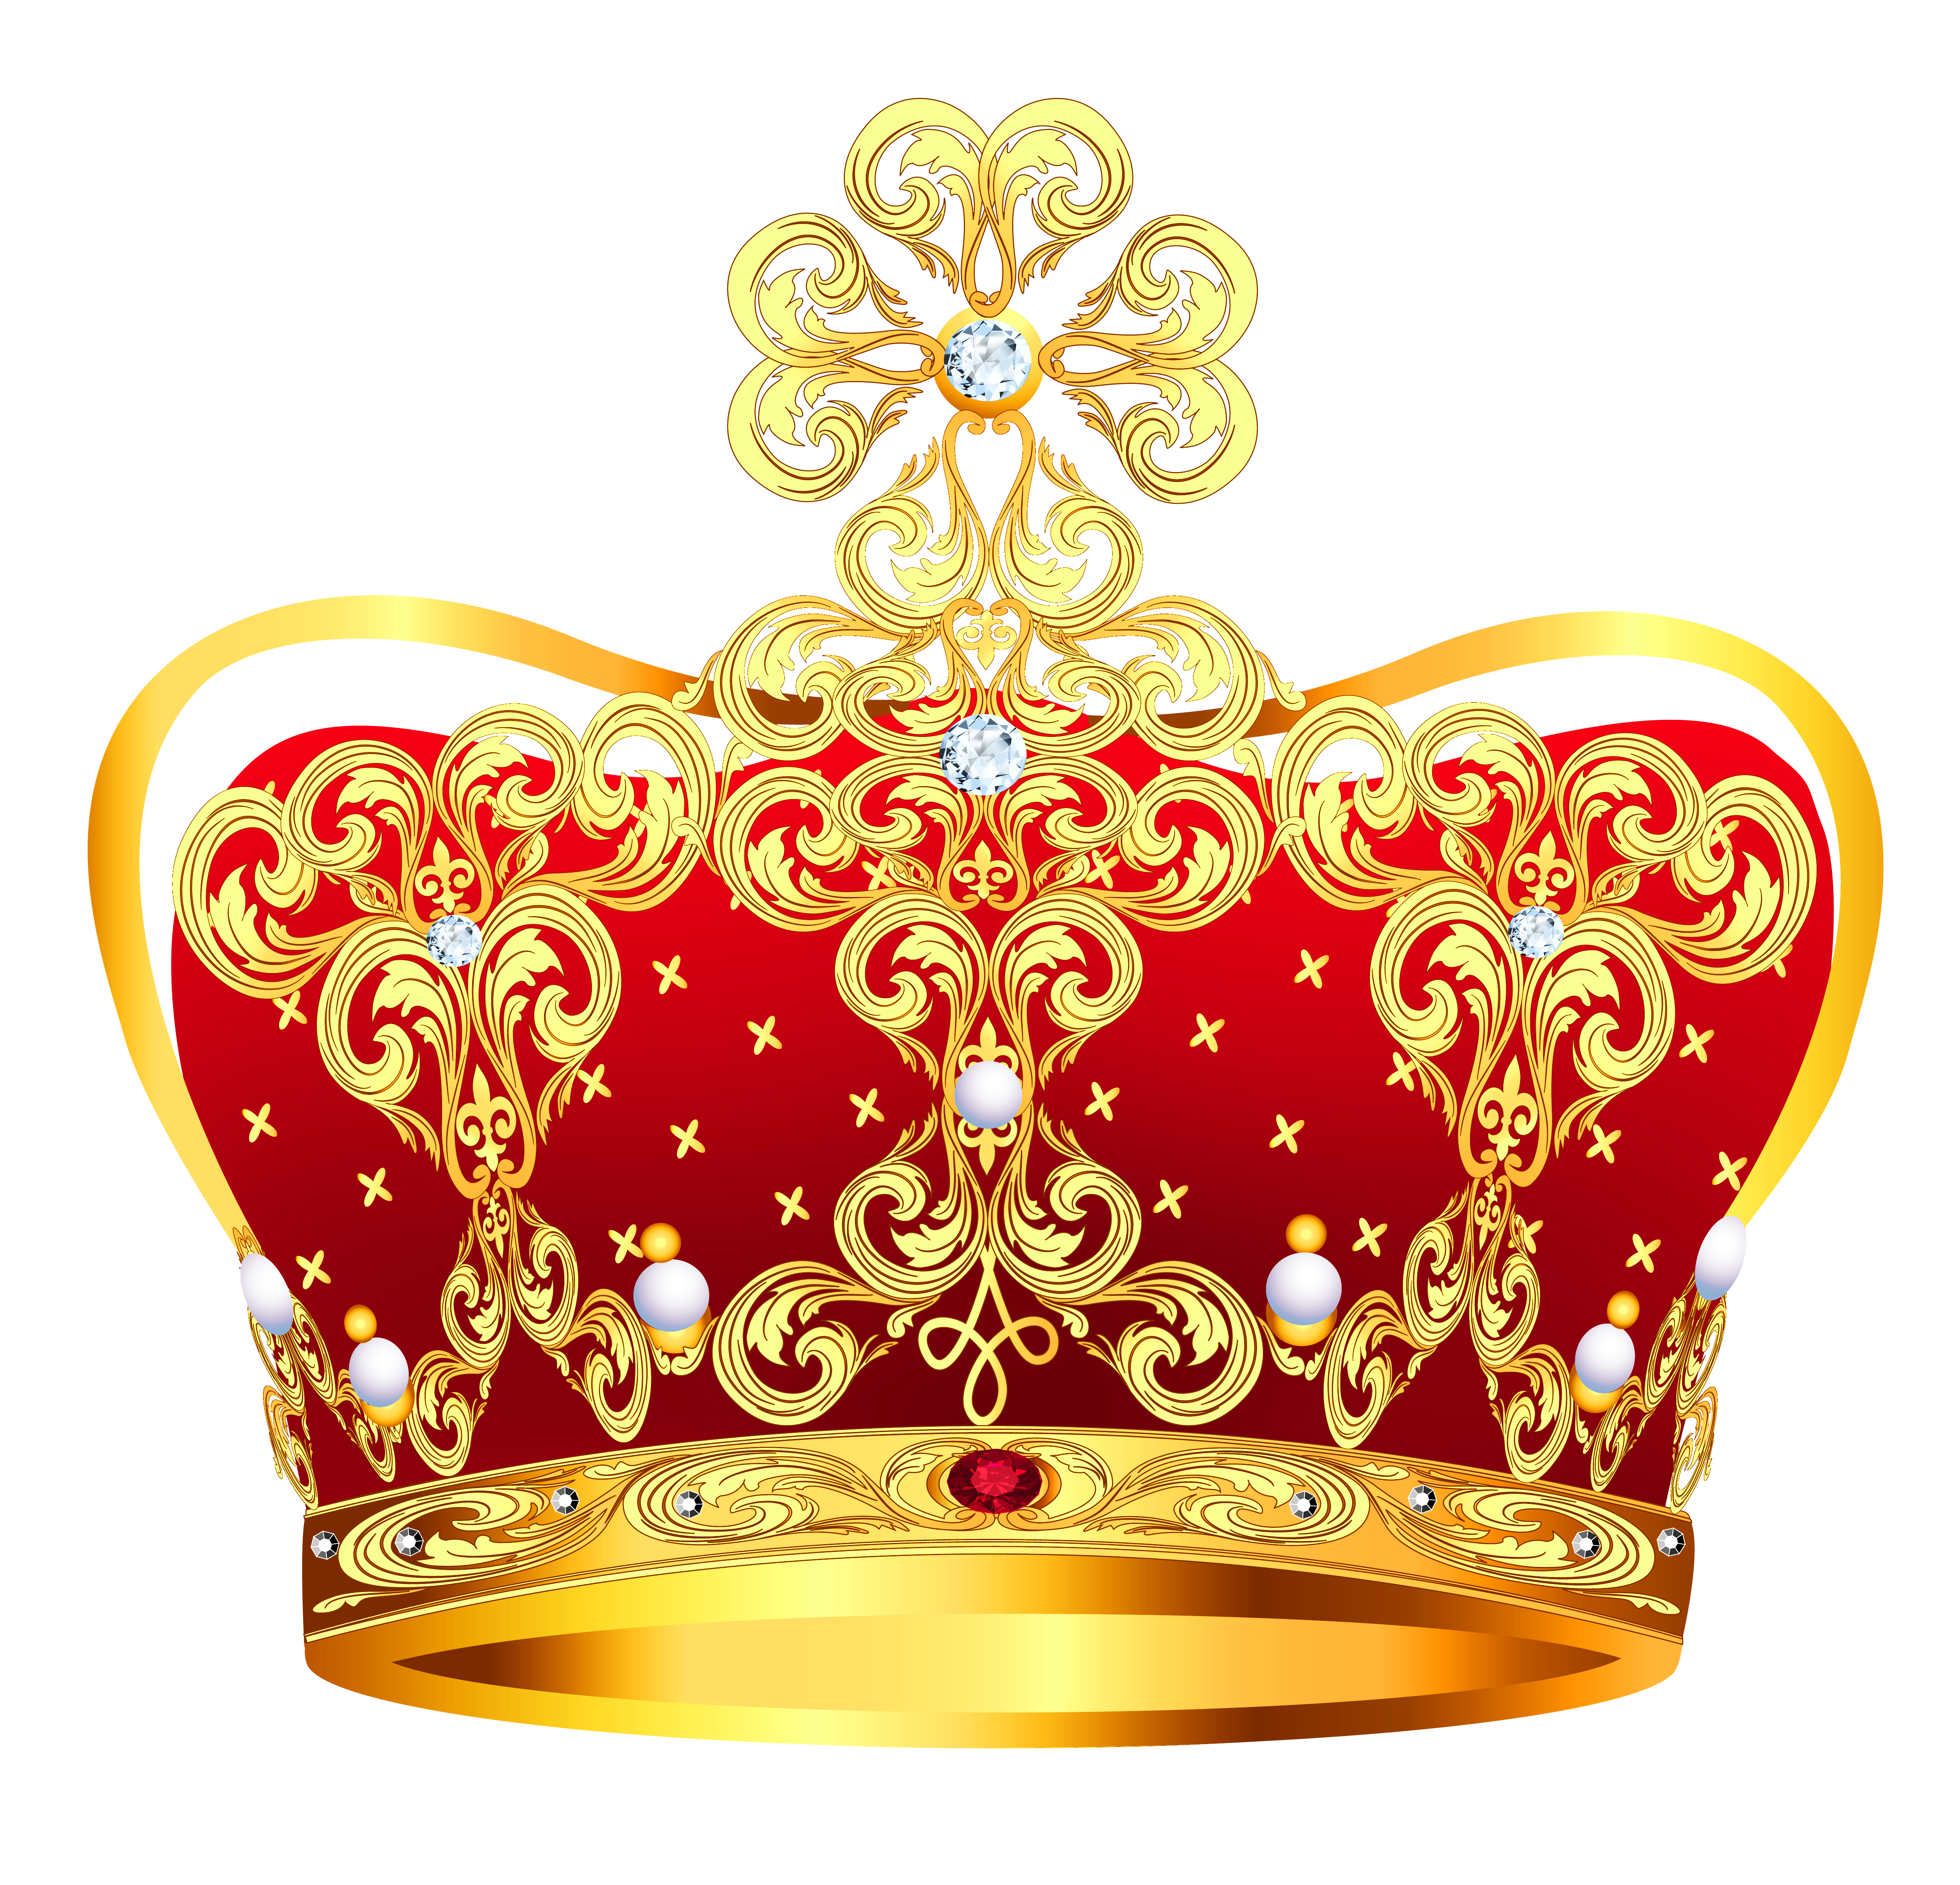 Queen clipart crown king. Png